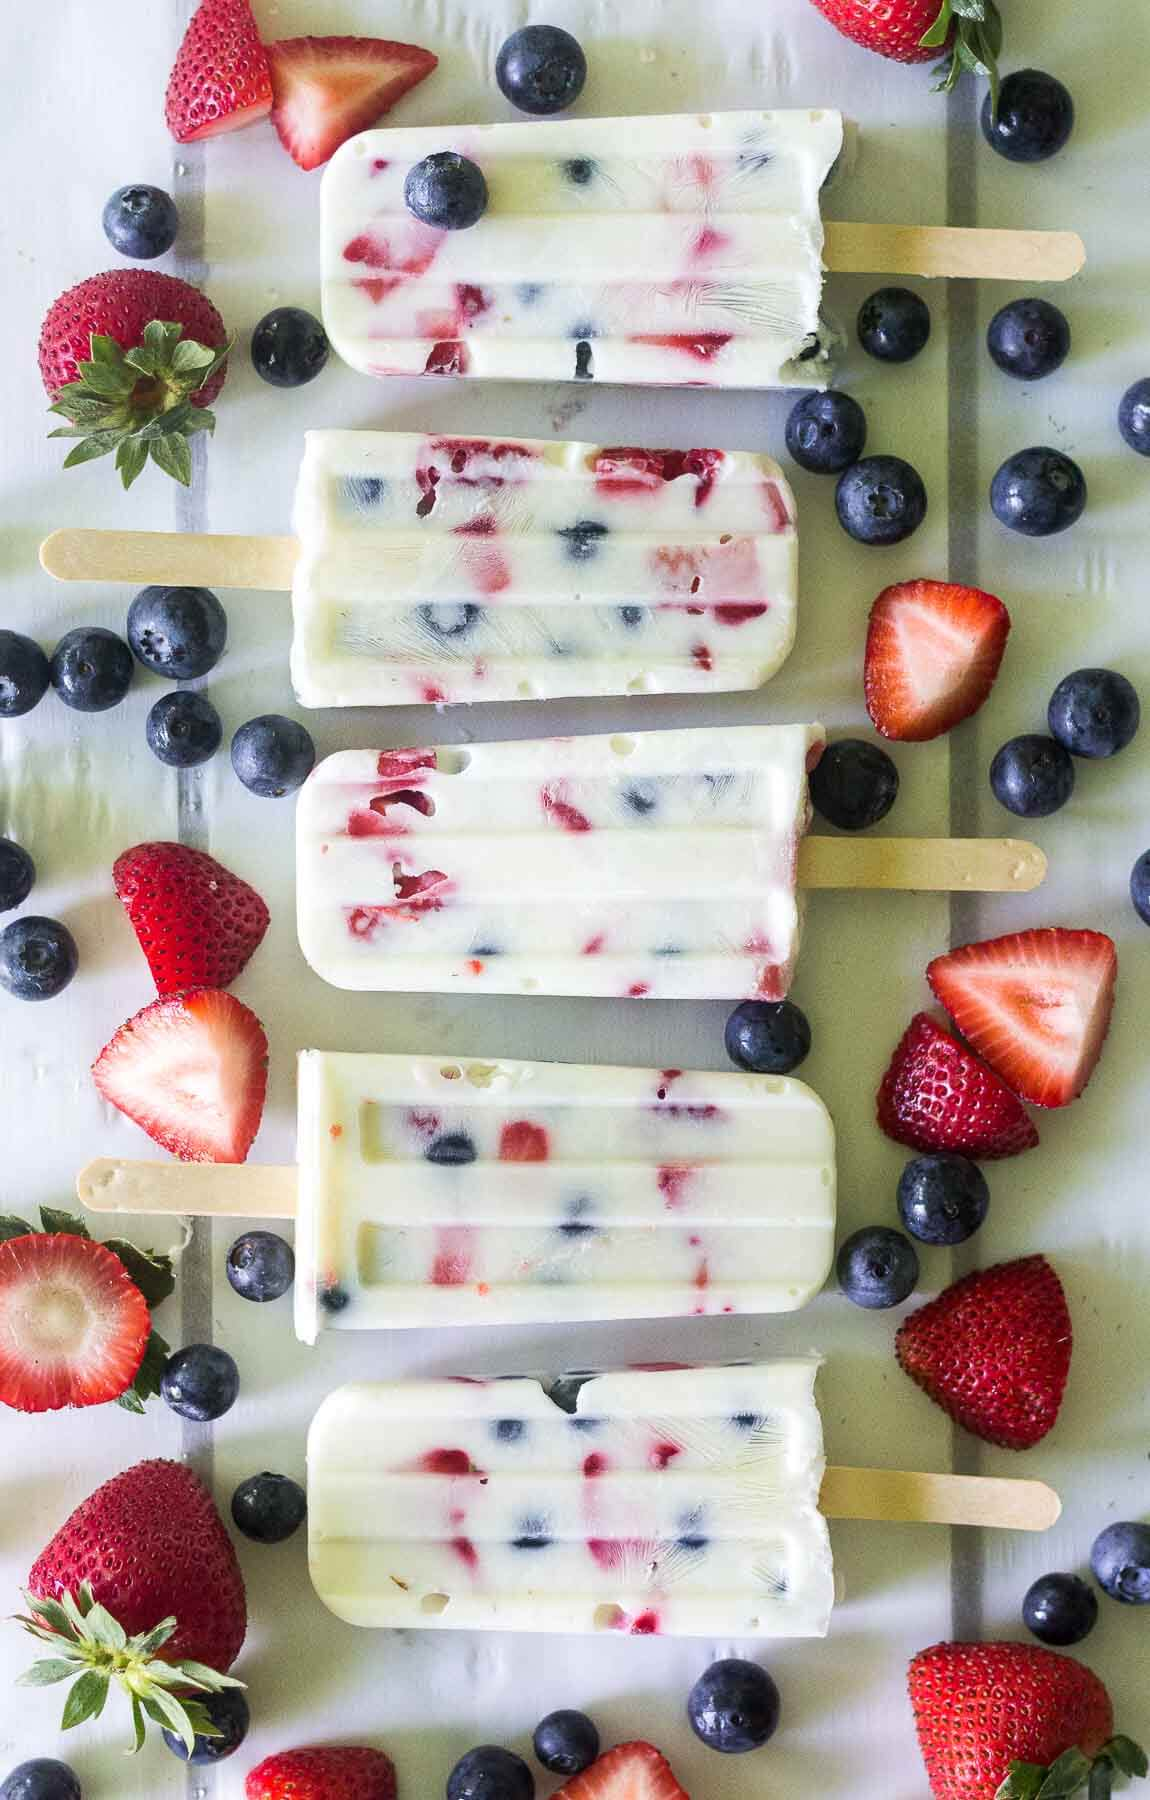 These red, white and blue yogurt popsicles are such a festive and healthy recipe to celebrate 4th of July! With only 3 ingredients, you can make this healthy pops in minutes.